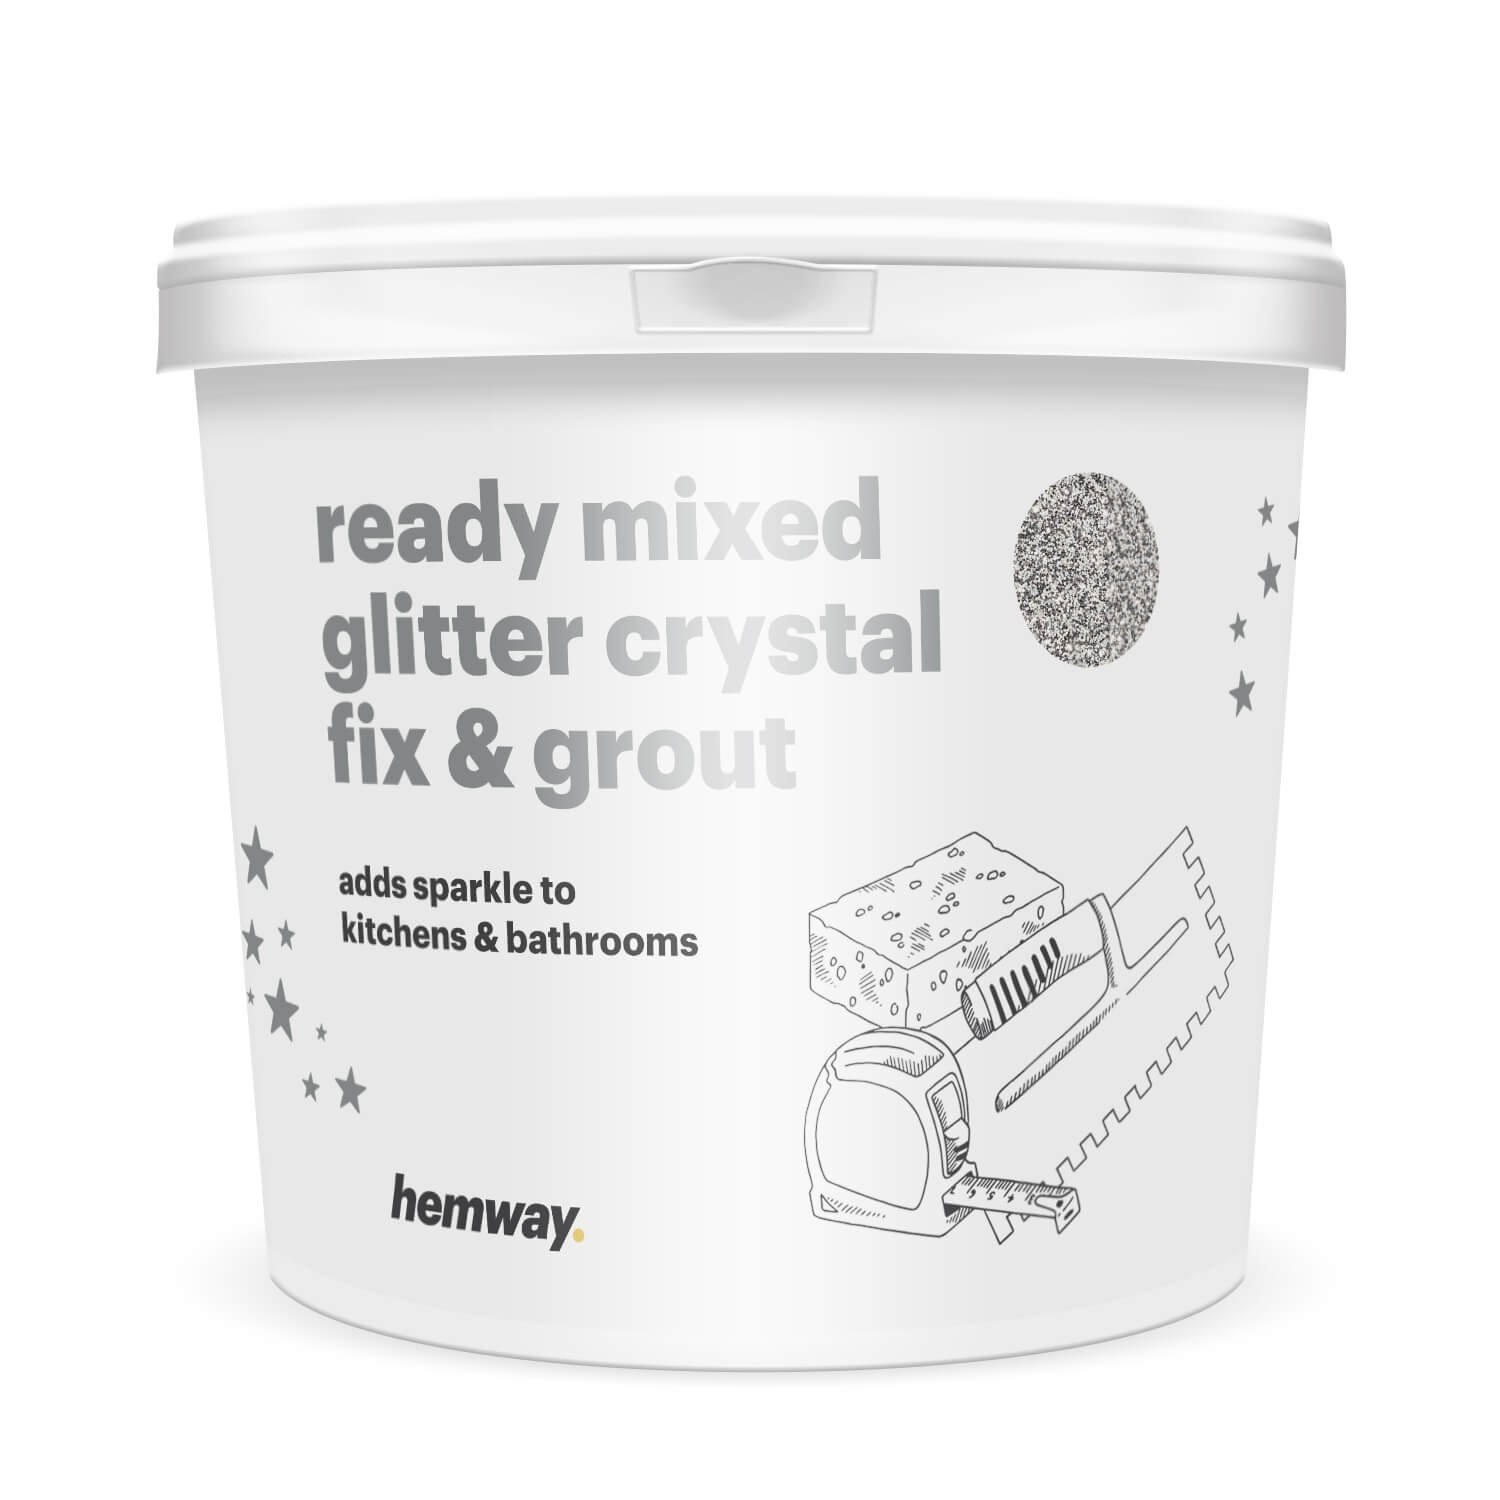 Hemway 4.5kg / 10lb Ready Mixed Glitter Crystal Fix & Grout (White Grout / Silver Glitter) for Tiles, Wet Room, Bathroom, Kitchen - High Heat Resistant for Underfloor Heating